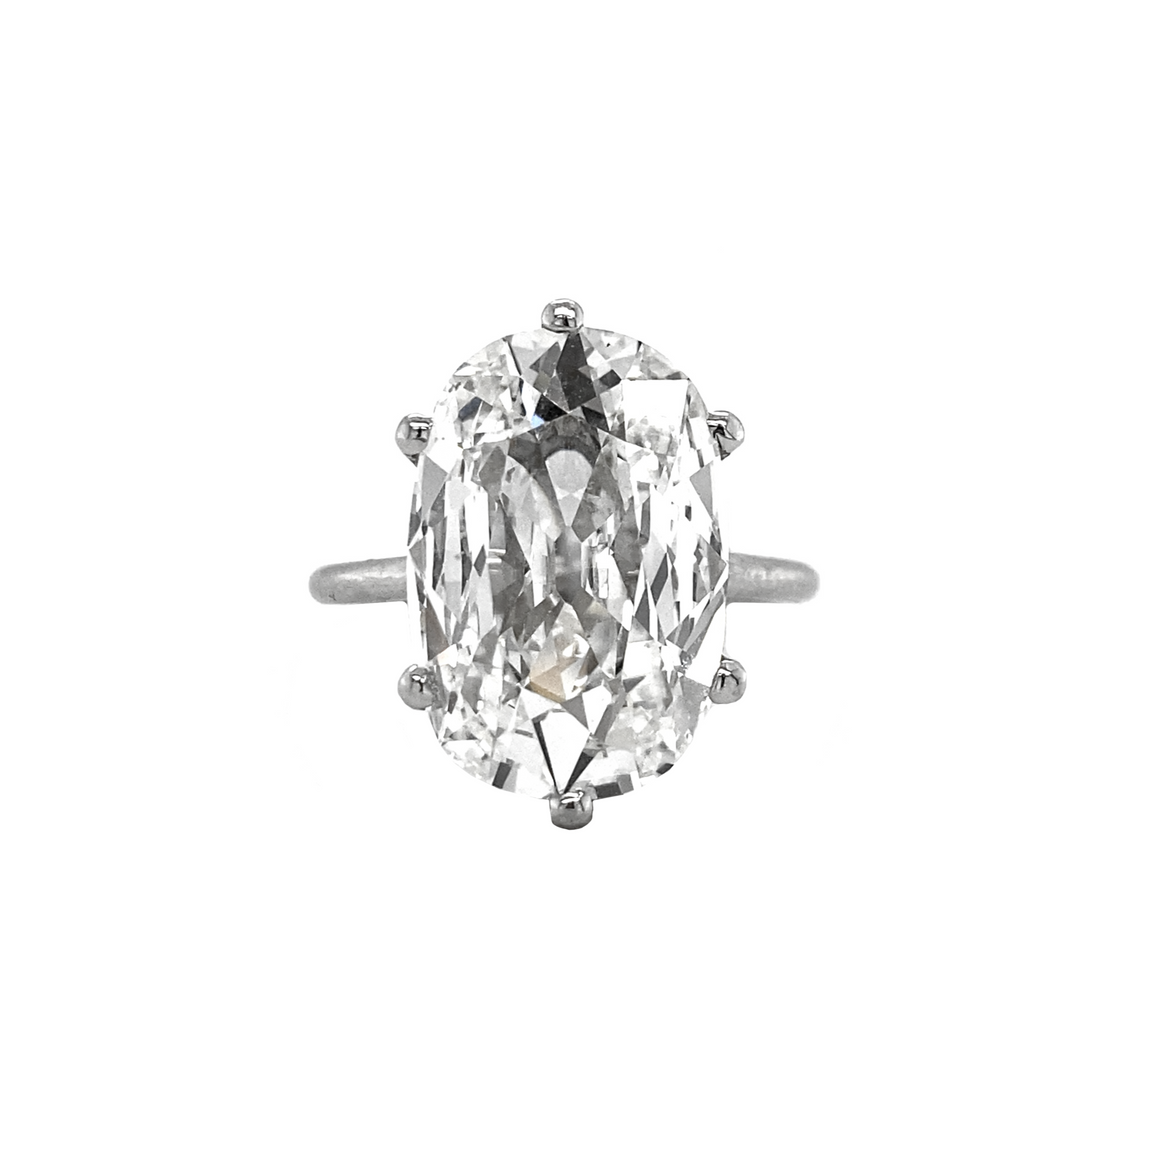 Elongated Cushion Diamond Ring - Lesley Ann Jewels